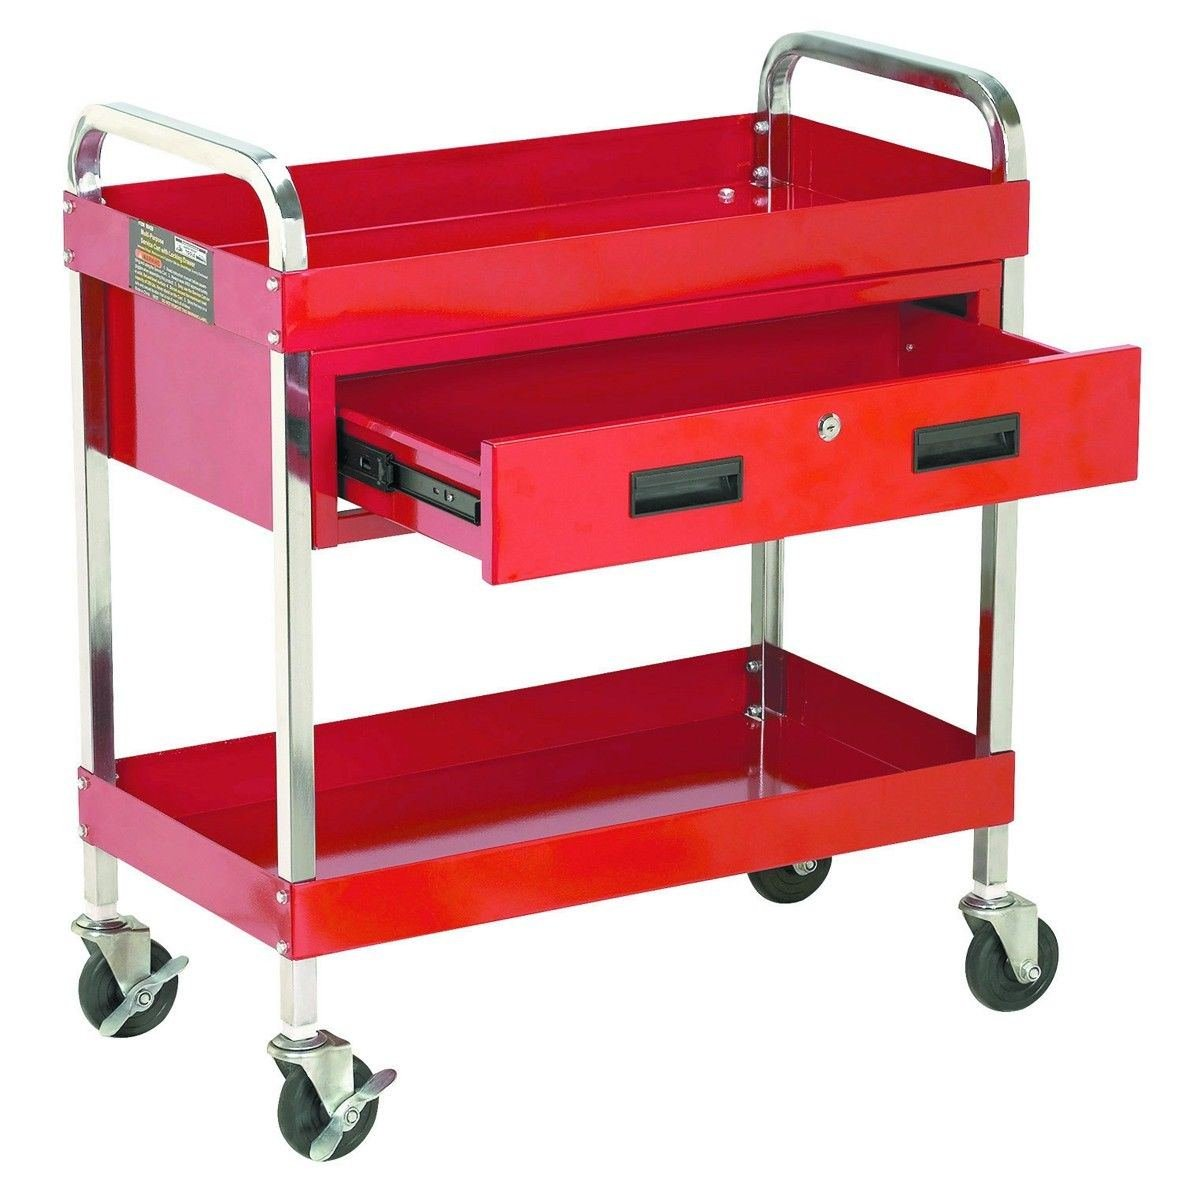 350 lb Capacity Large Service Cart with Locking Storage Drawer Tool Cart by Alitop